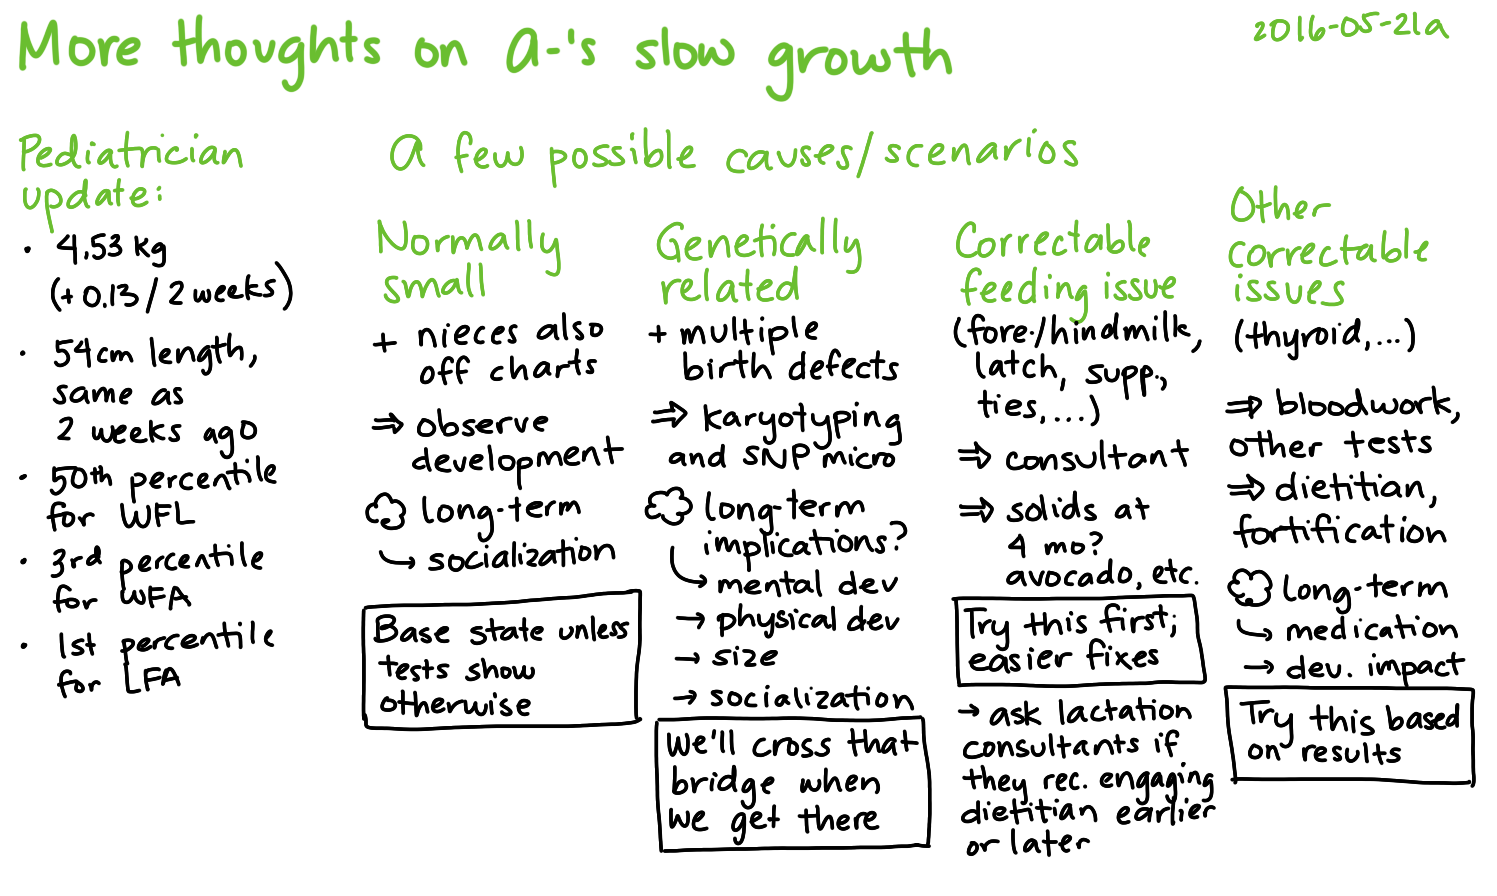 2016-05-21a More thoughts on A-'s slow growth -- index card #parenting #concern #health #calibration.png